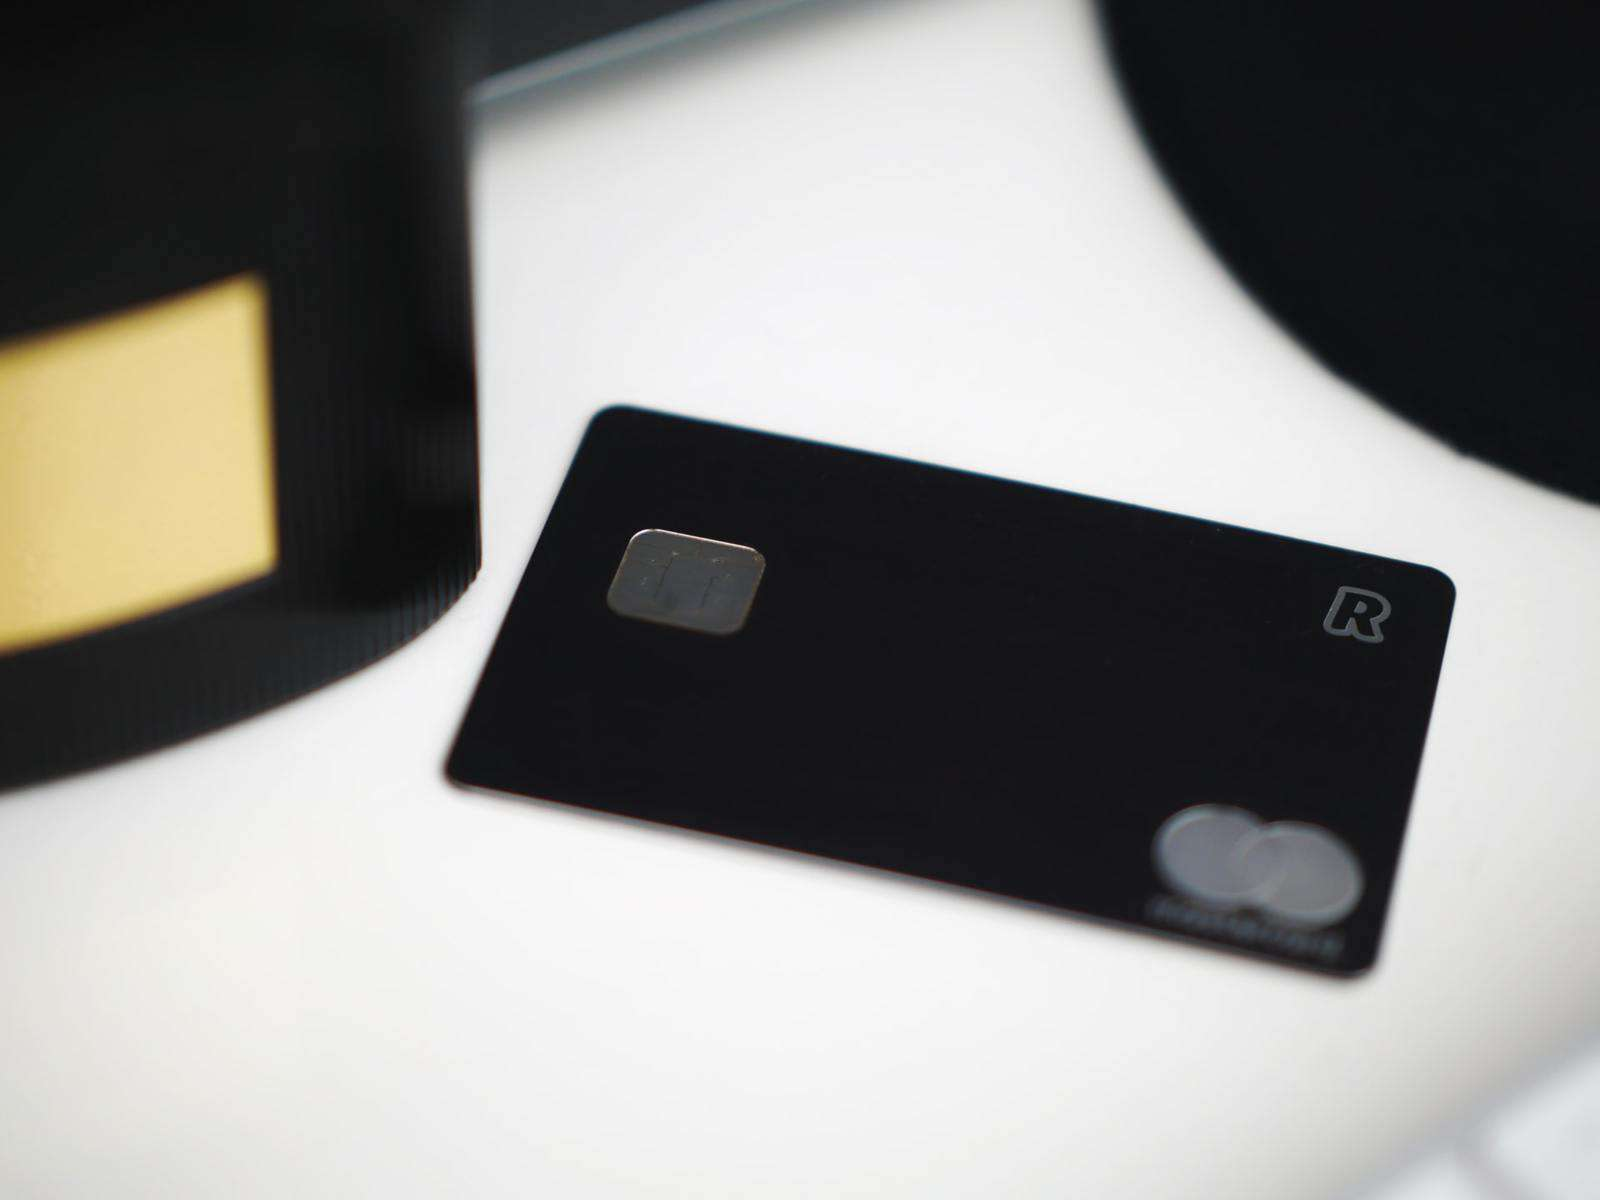 Credit card on table